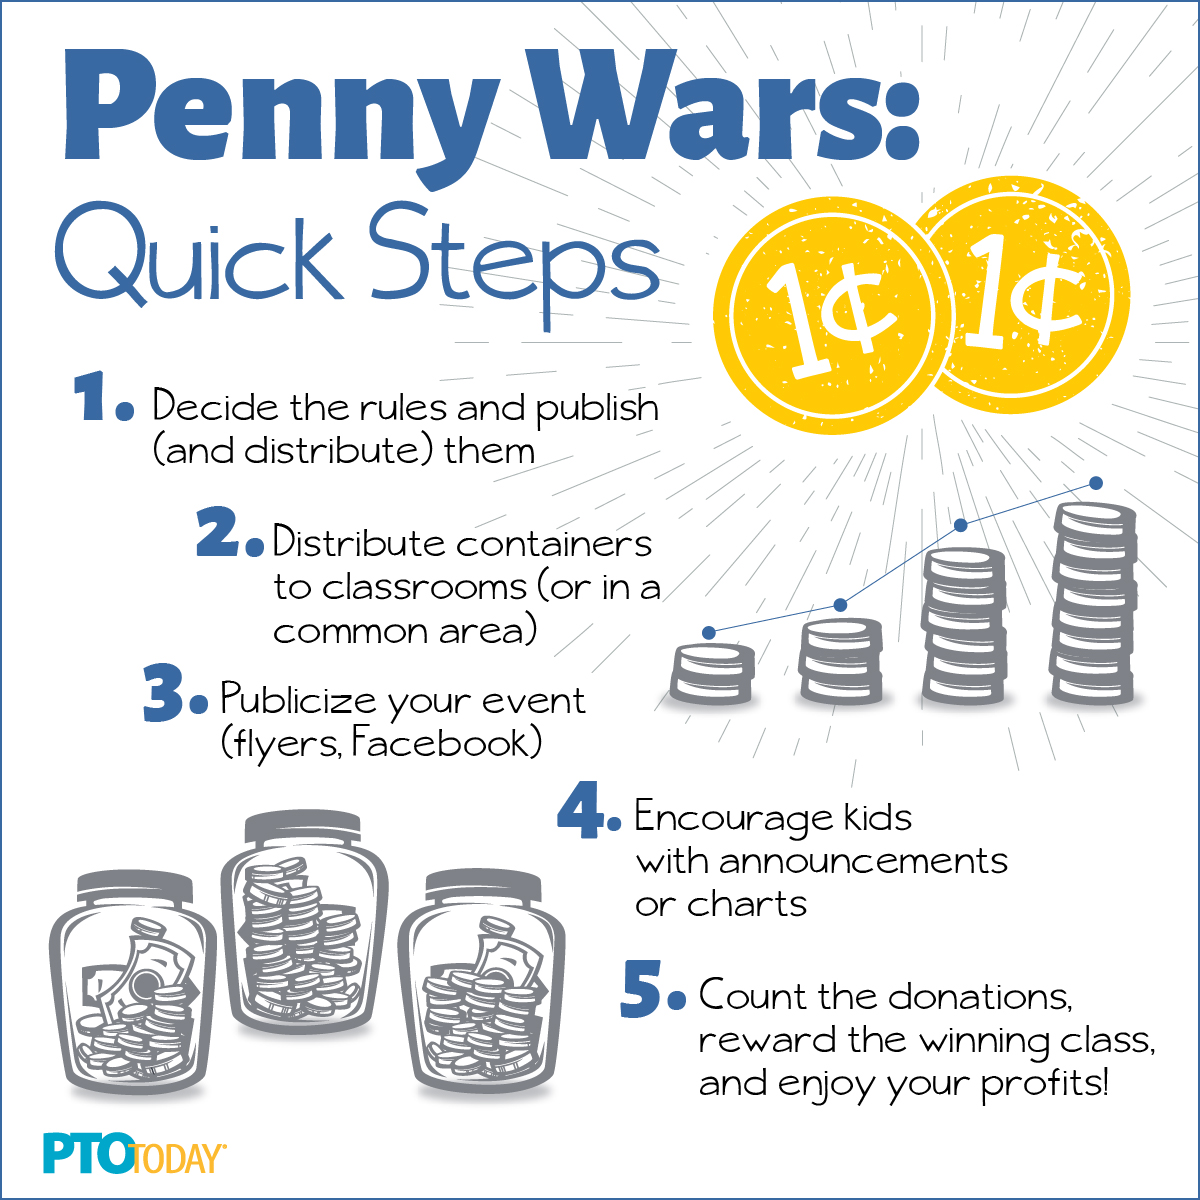 how to run a school penny war fundraiser - pto today